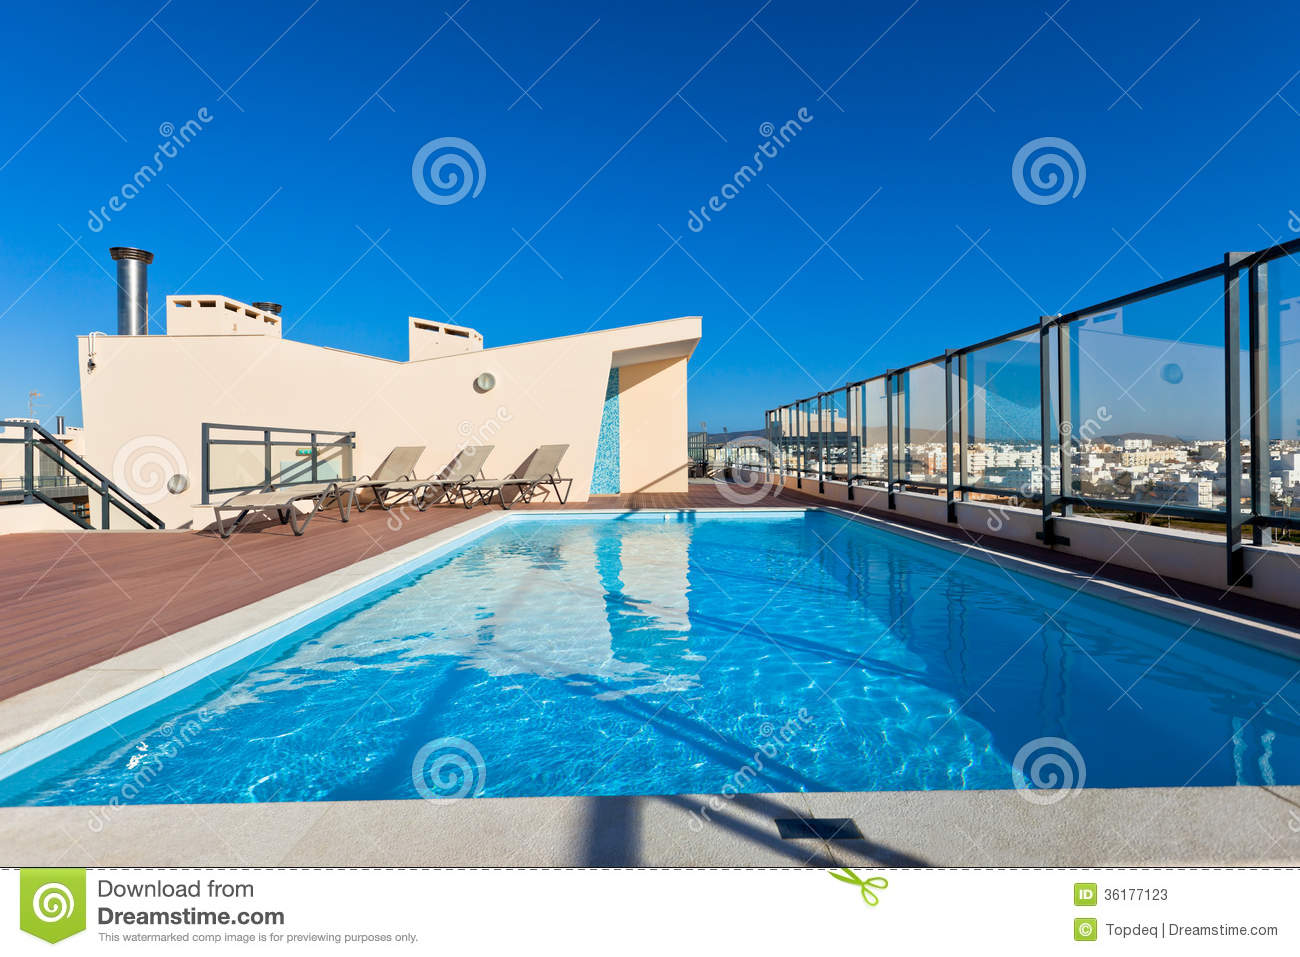 Pool On Roof Detail : Outdoor swimming pool at the house roof stock image